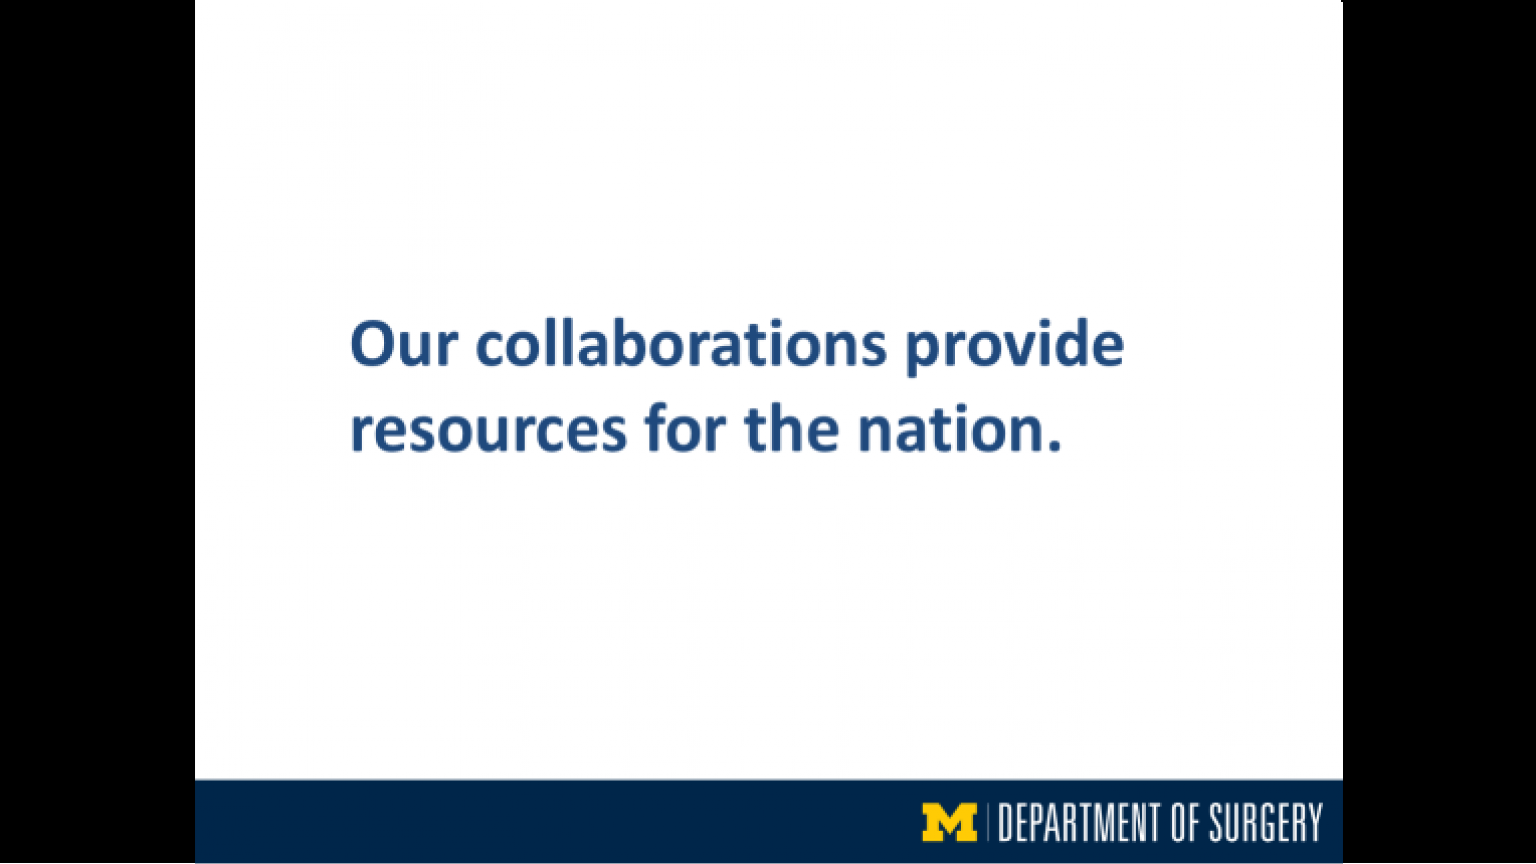 """""""Our collaborations provide resources for the nation"""" - fourteenth slide of """"This Is What We Stand For"""" presentation"""